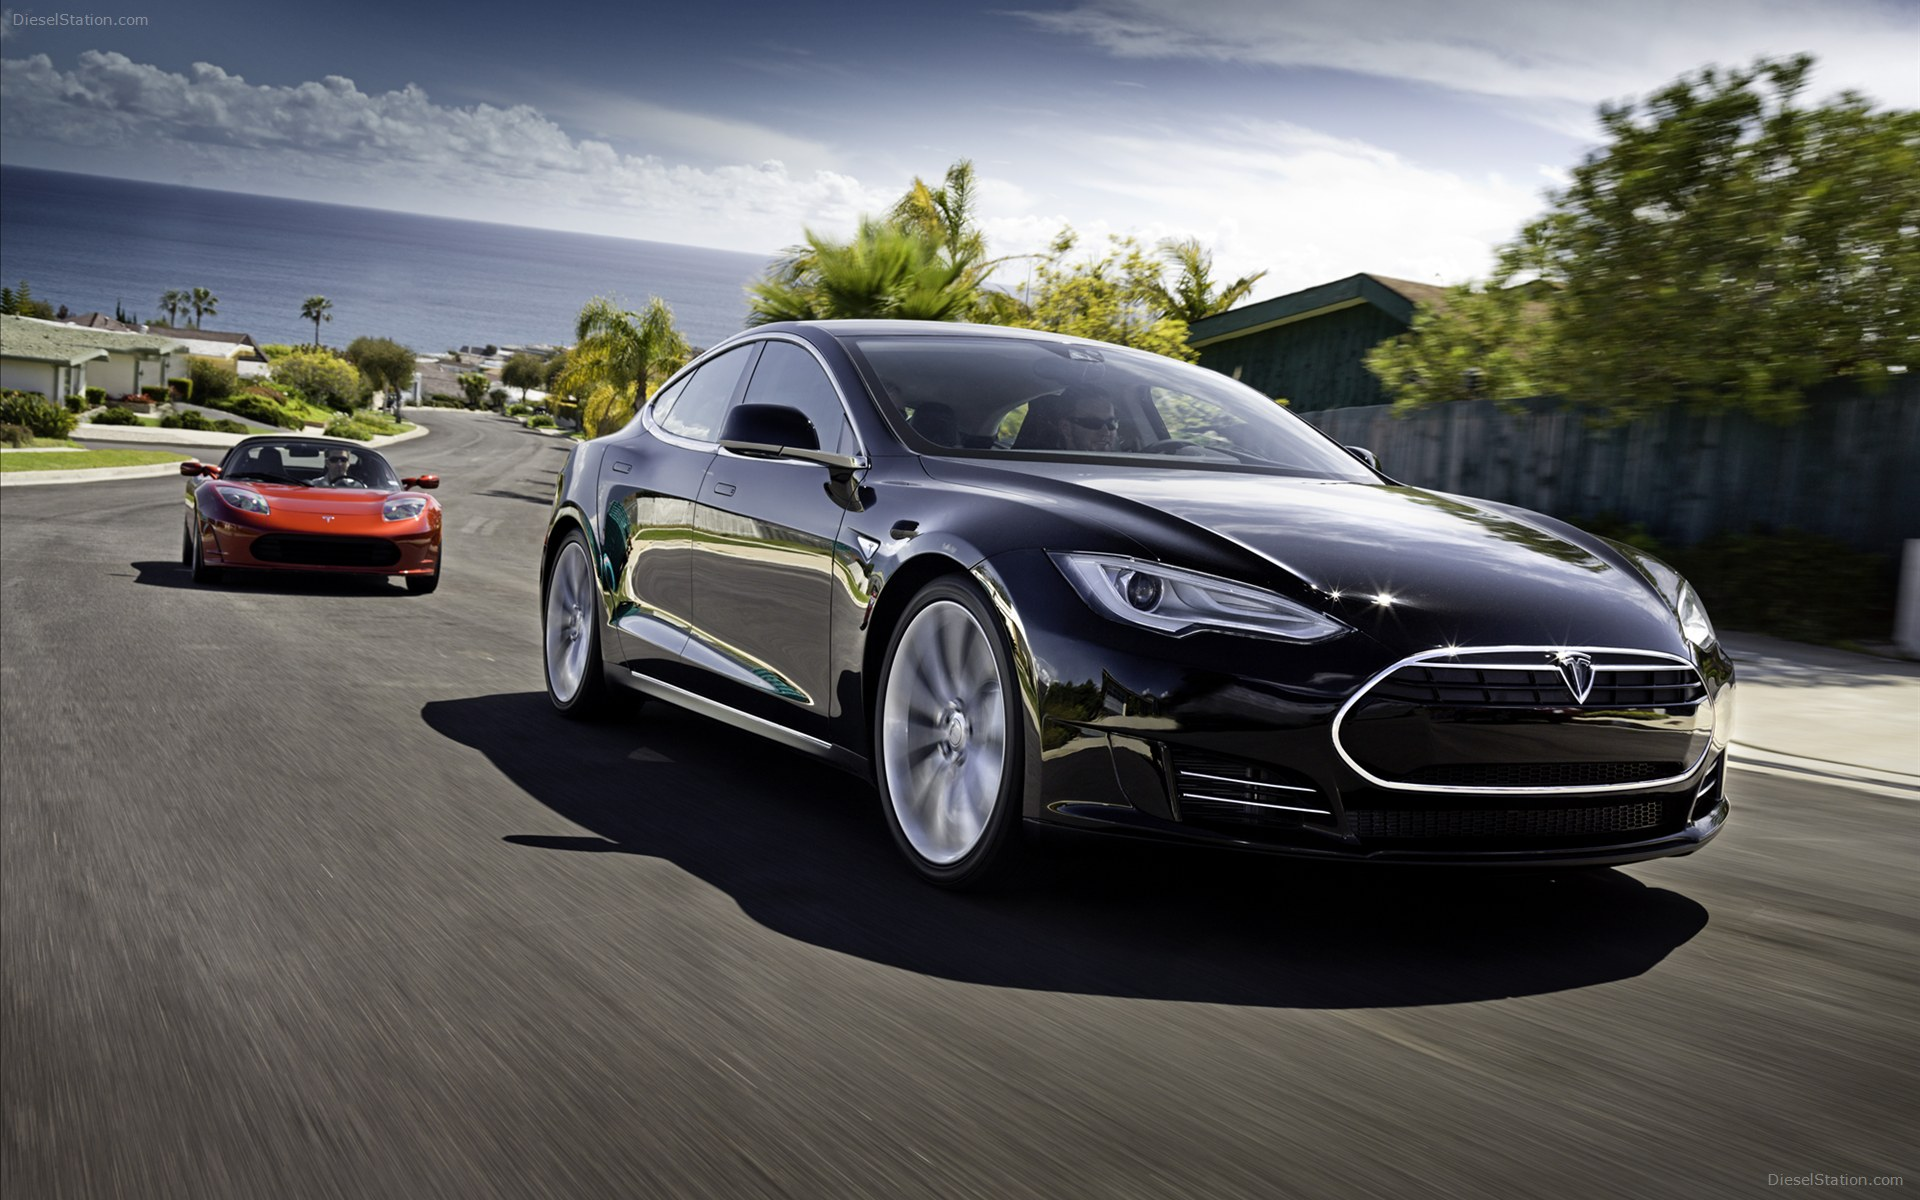 TeslaFi - Tesla Owners' Favorite Features